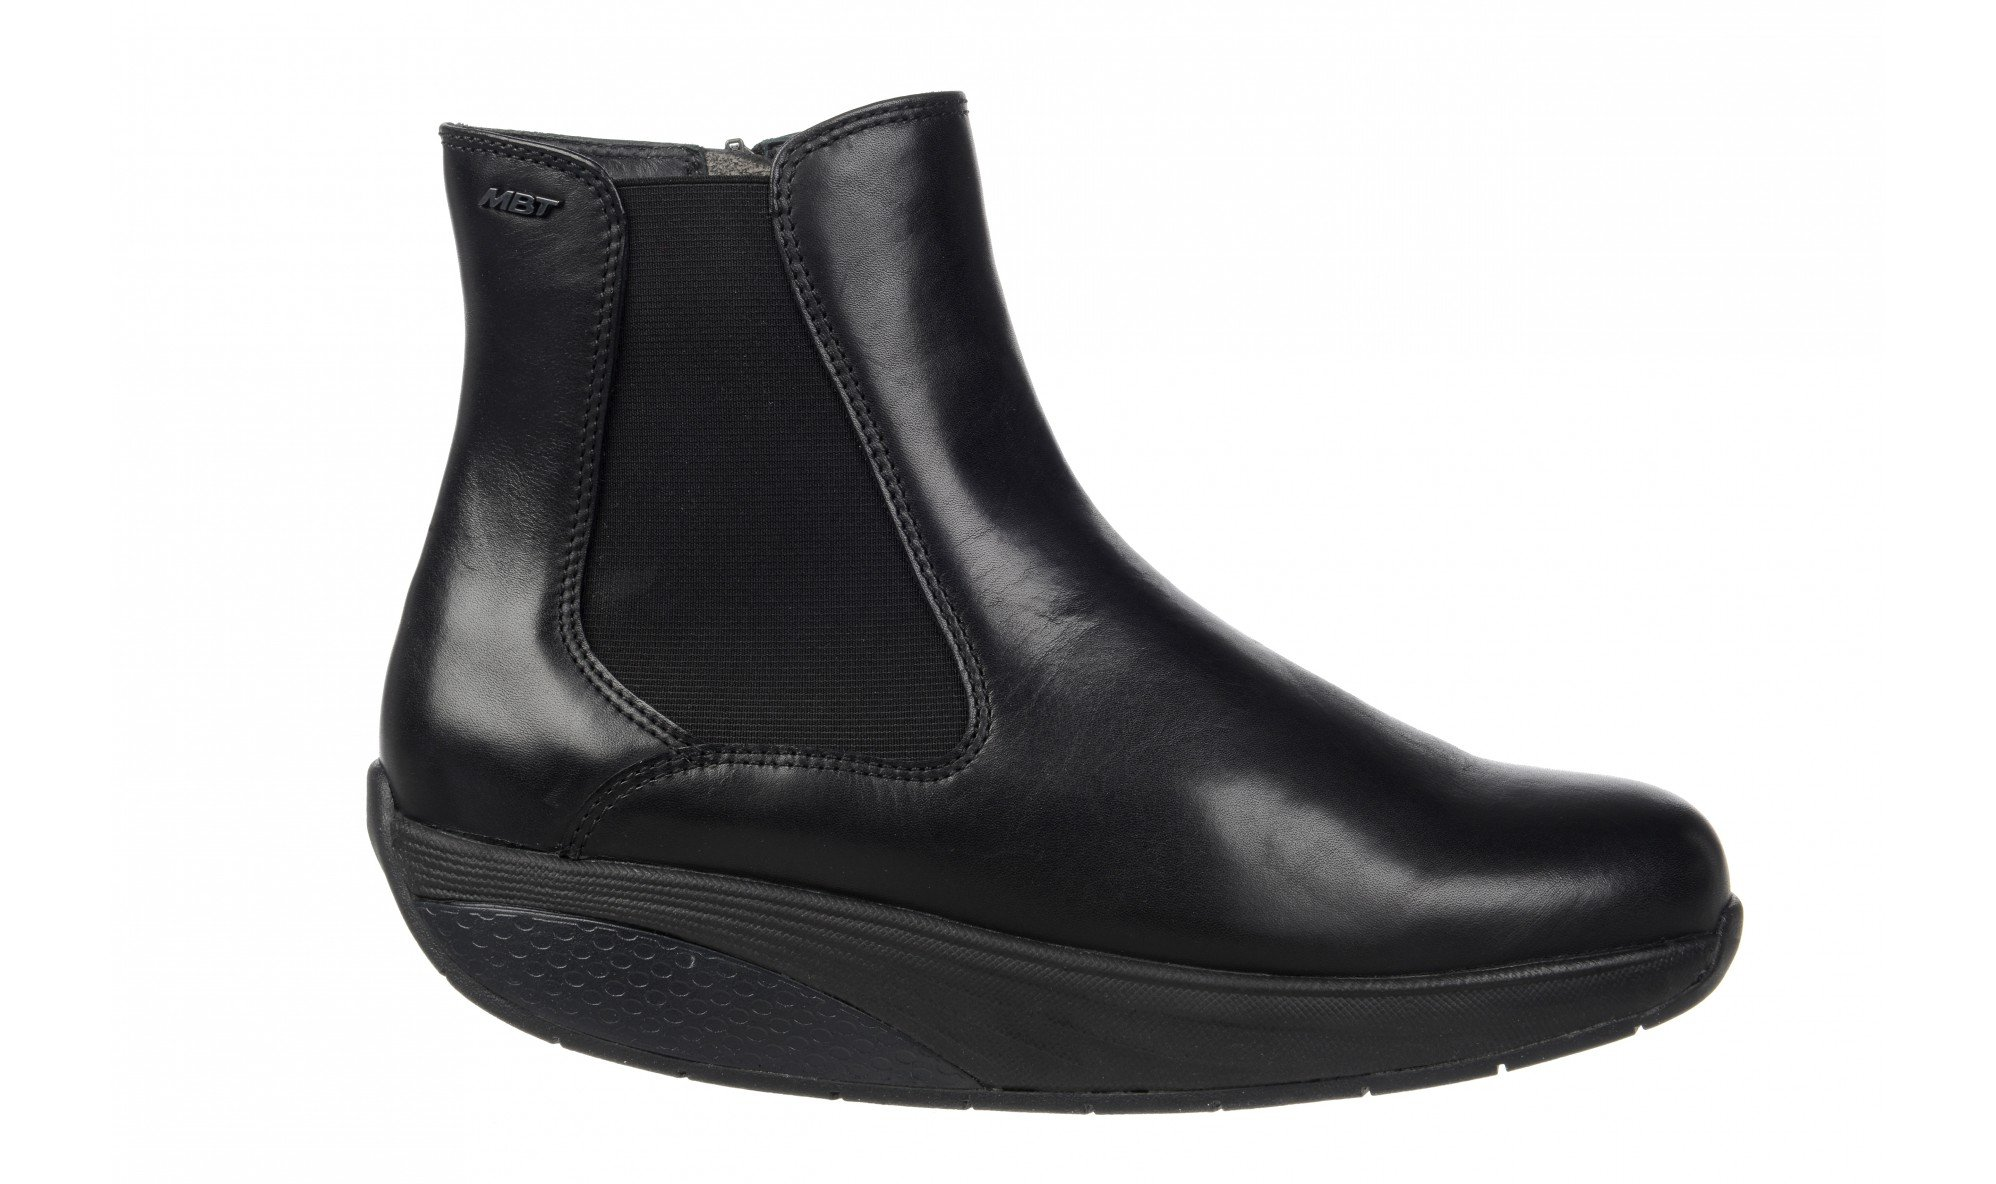 MBT WOMEN'S ARUSI ANKLE BOOT WITH VIBRAM SOLE (BLACK OR BROWN) (EU37(6-6.5), BLACK) by MBT